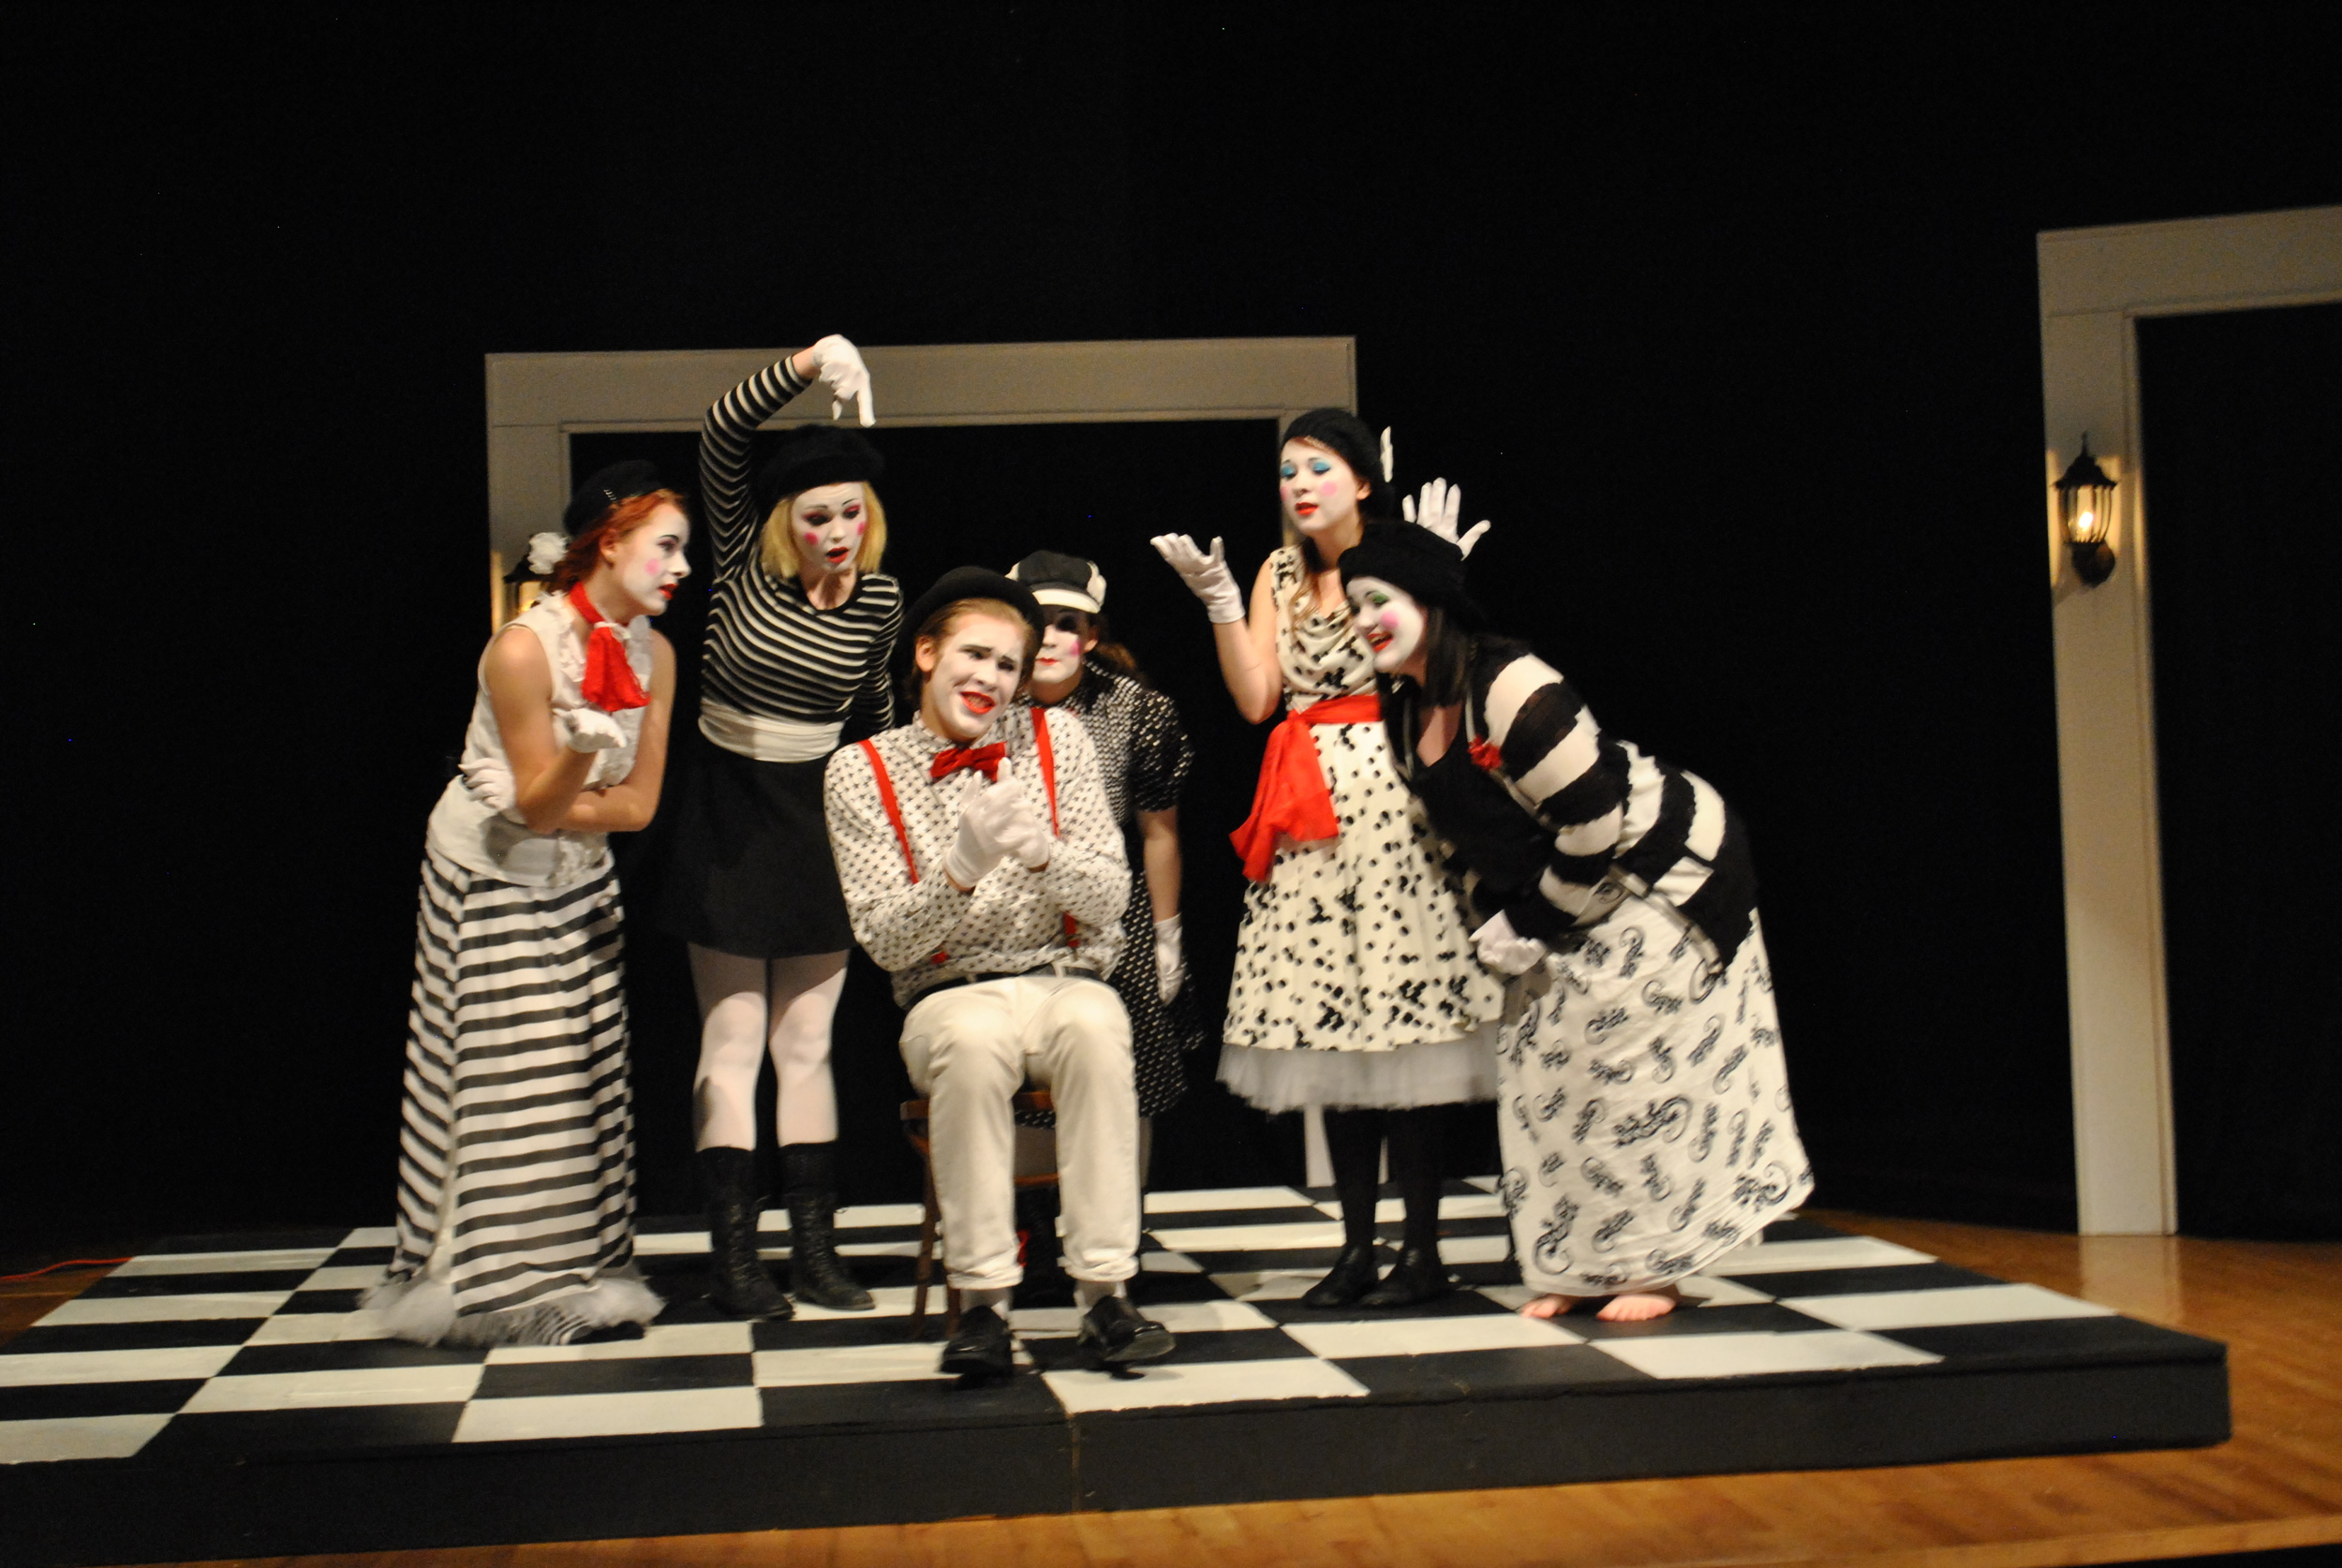 """A scene from """"The Chair Play,"""" WDC's one-act play that features beautiful costuming and a chess-inspired set. The cast and crew will compete in Sections on Jan. 31 in Hawley. (Photo by Beth Hawkins, WDC Schools)"""